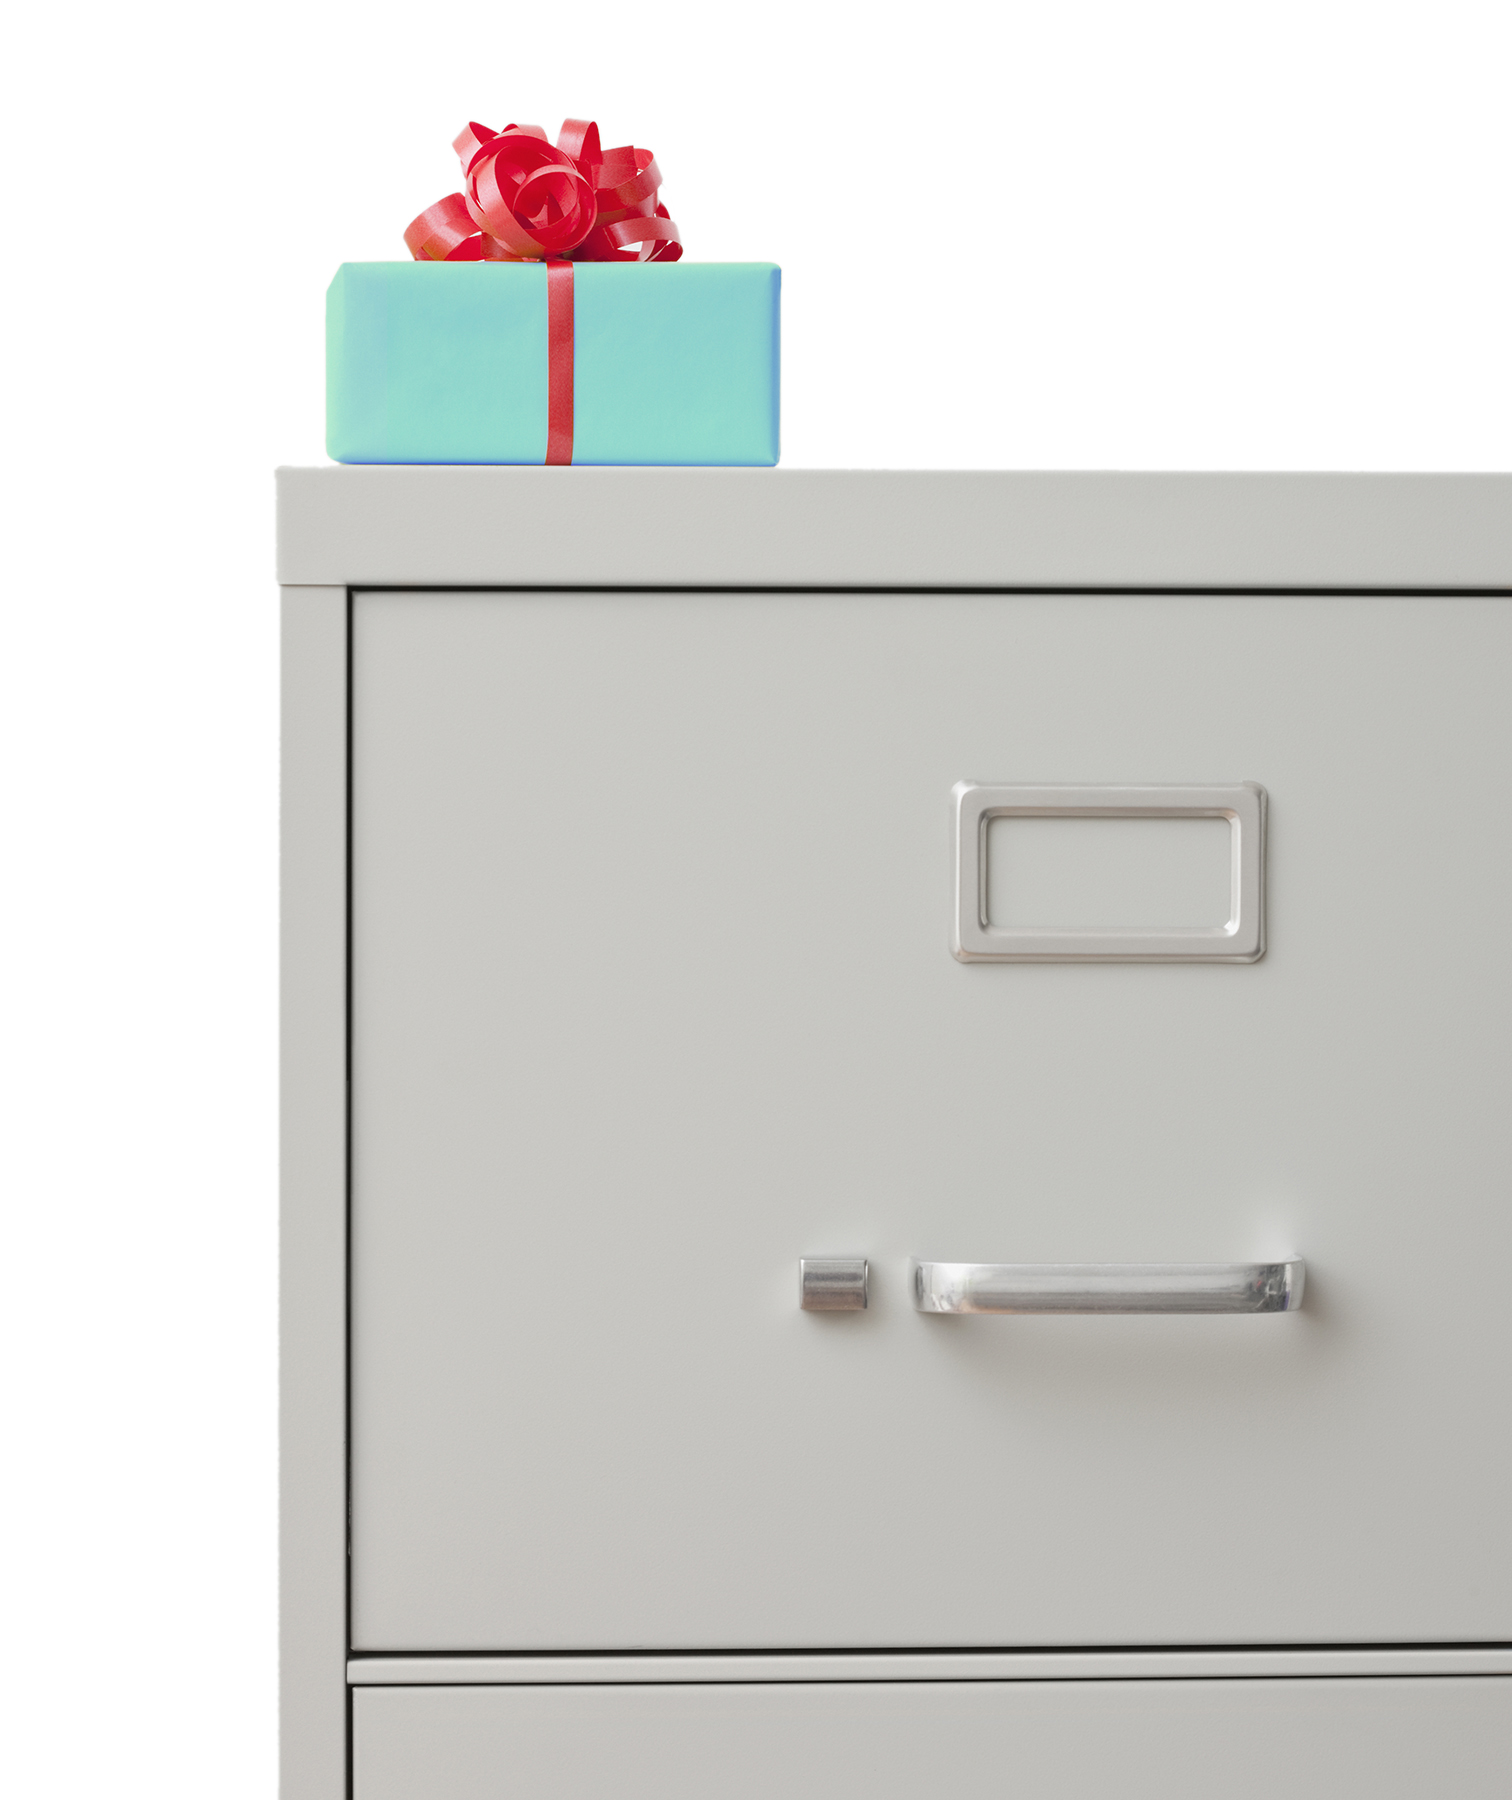 Gift on a filing cabinet